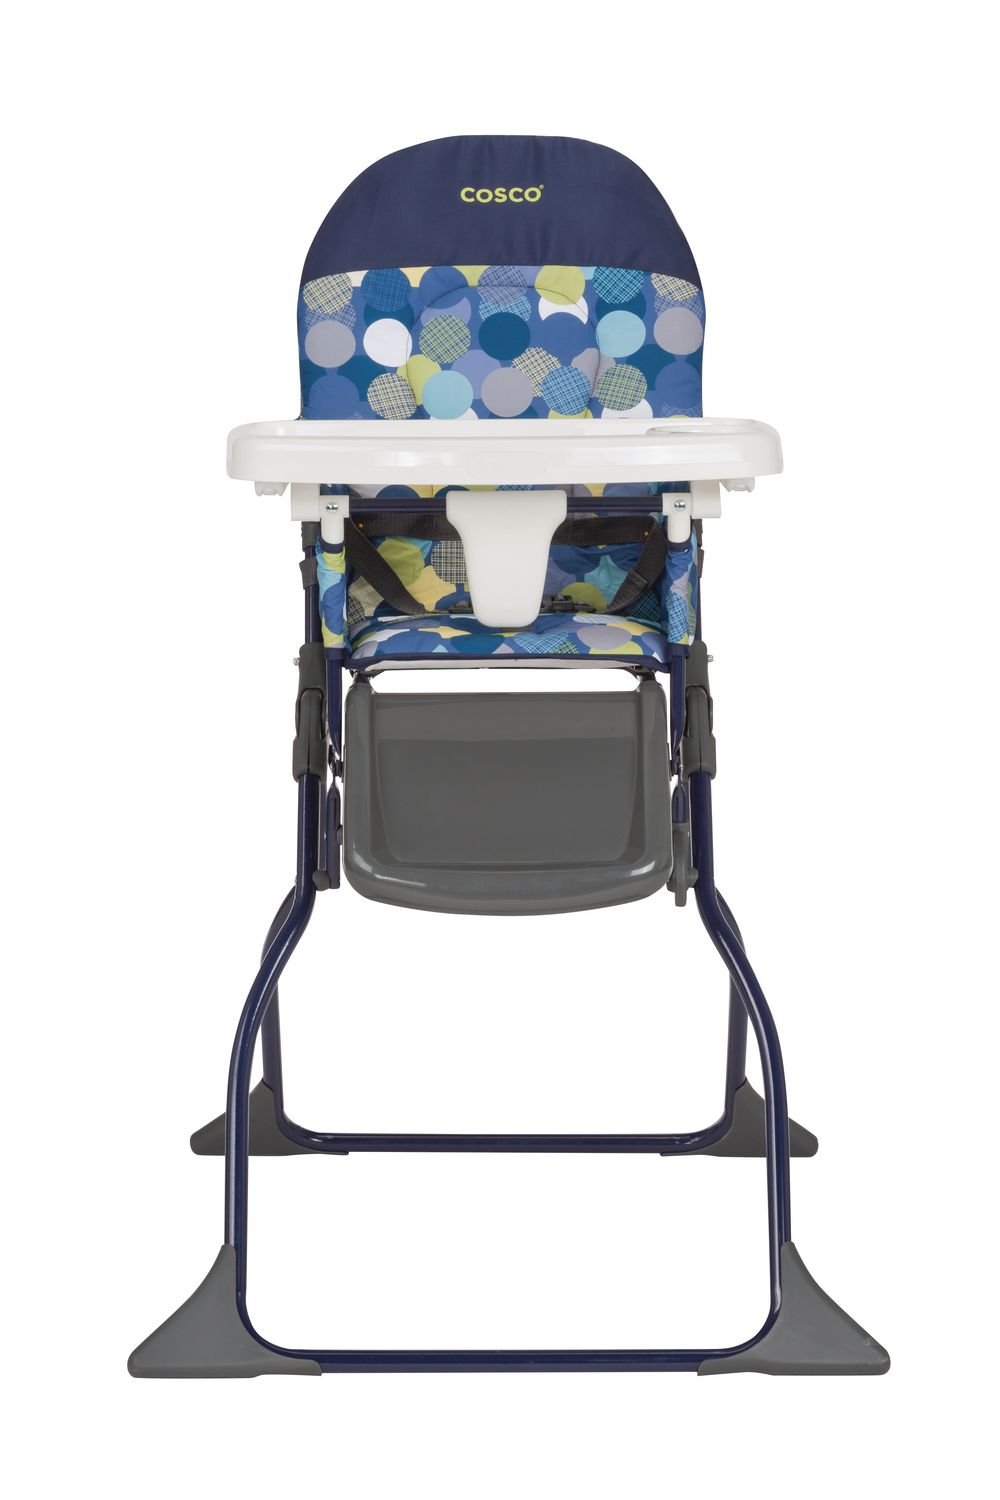 Baby eating chair attached to table - Cosco Juvenile Comet Simple Fold High Chair